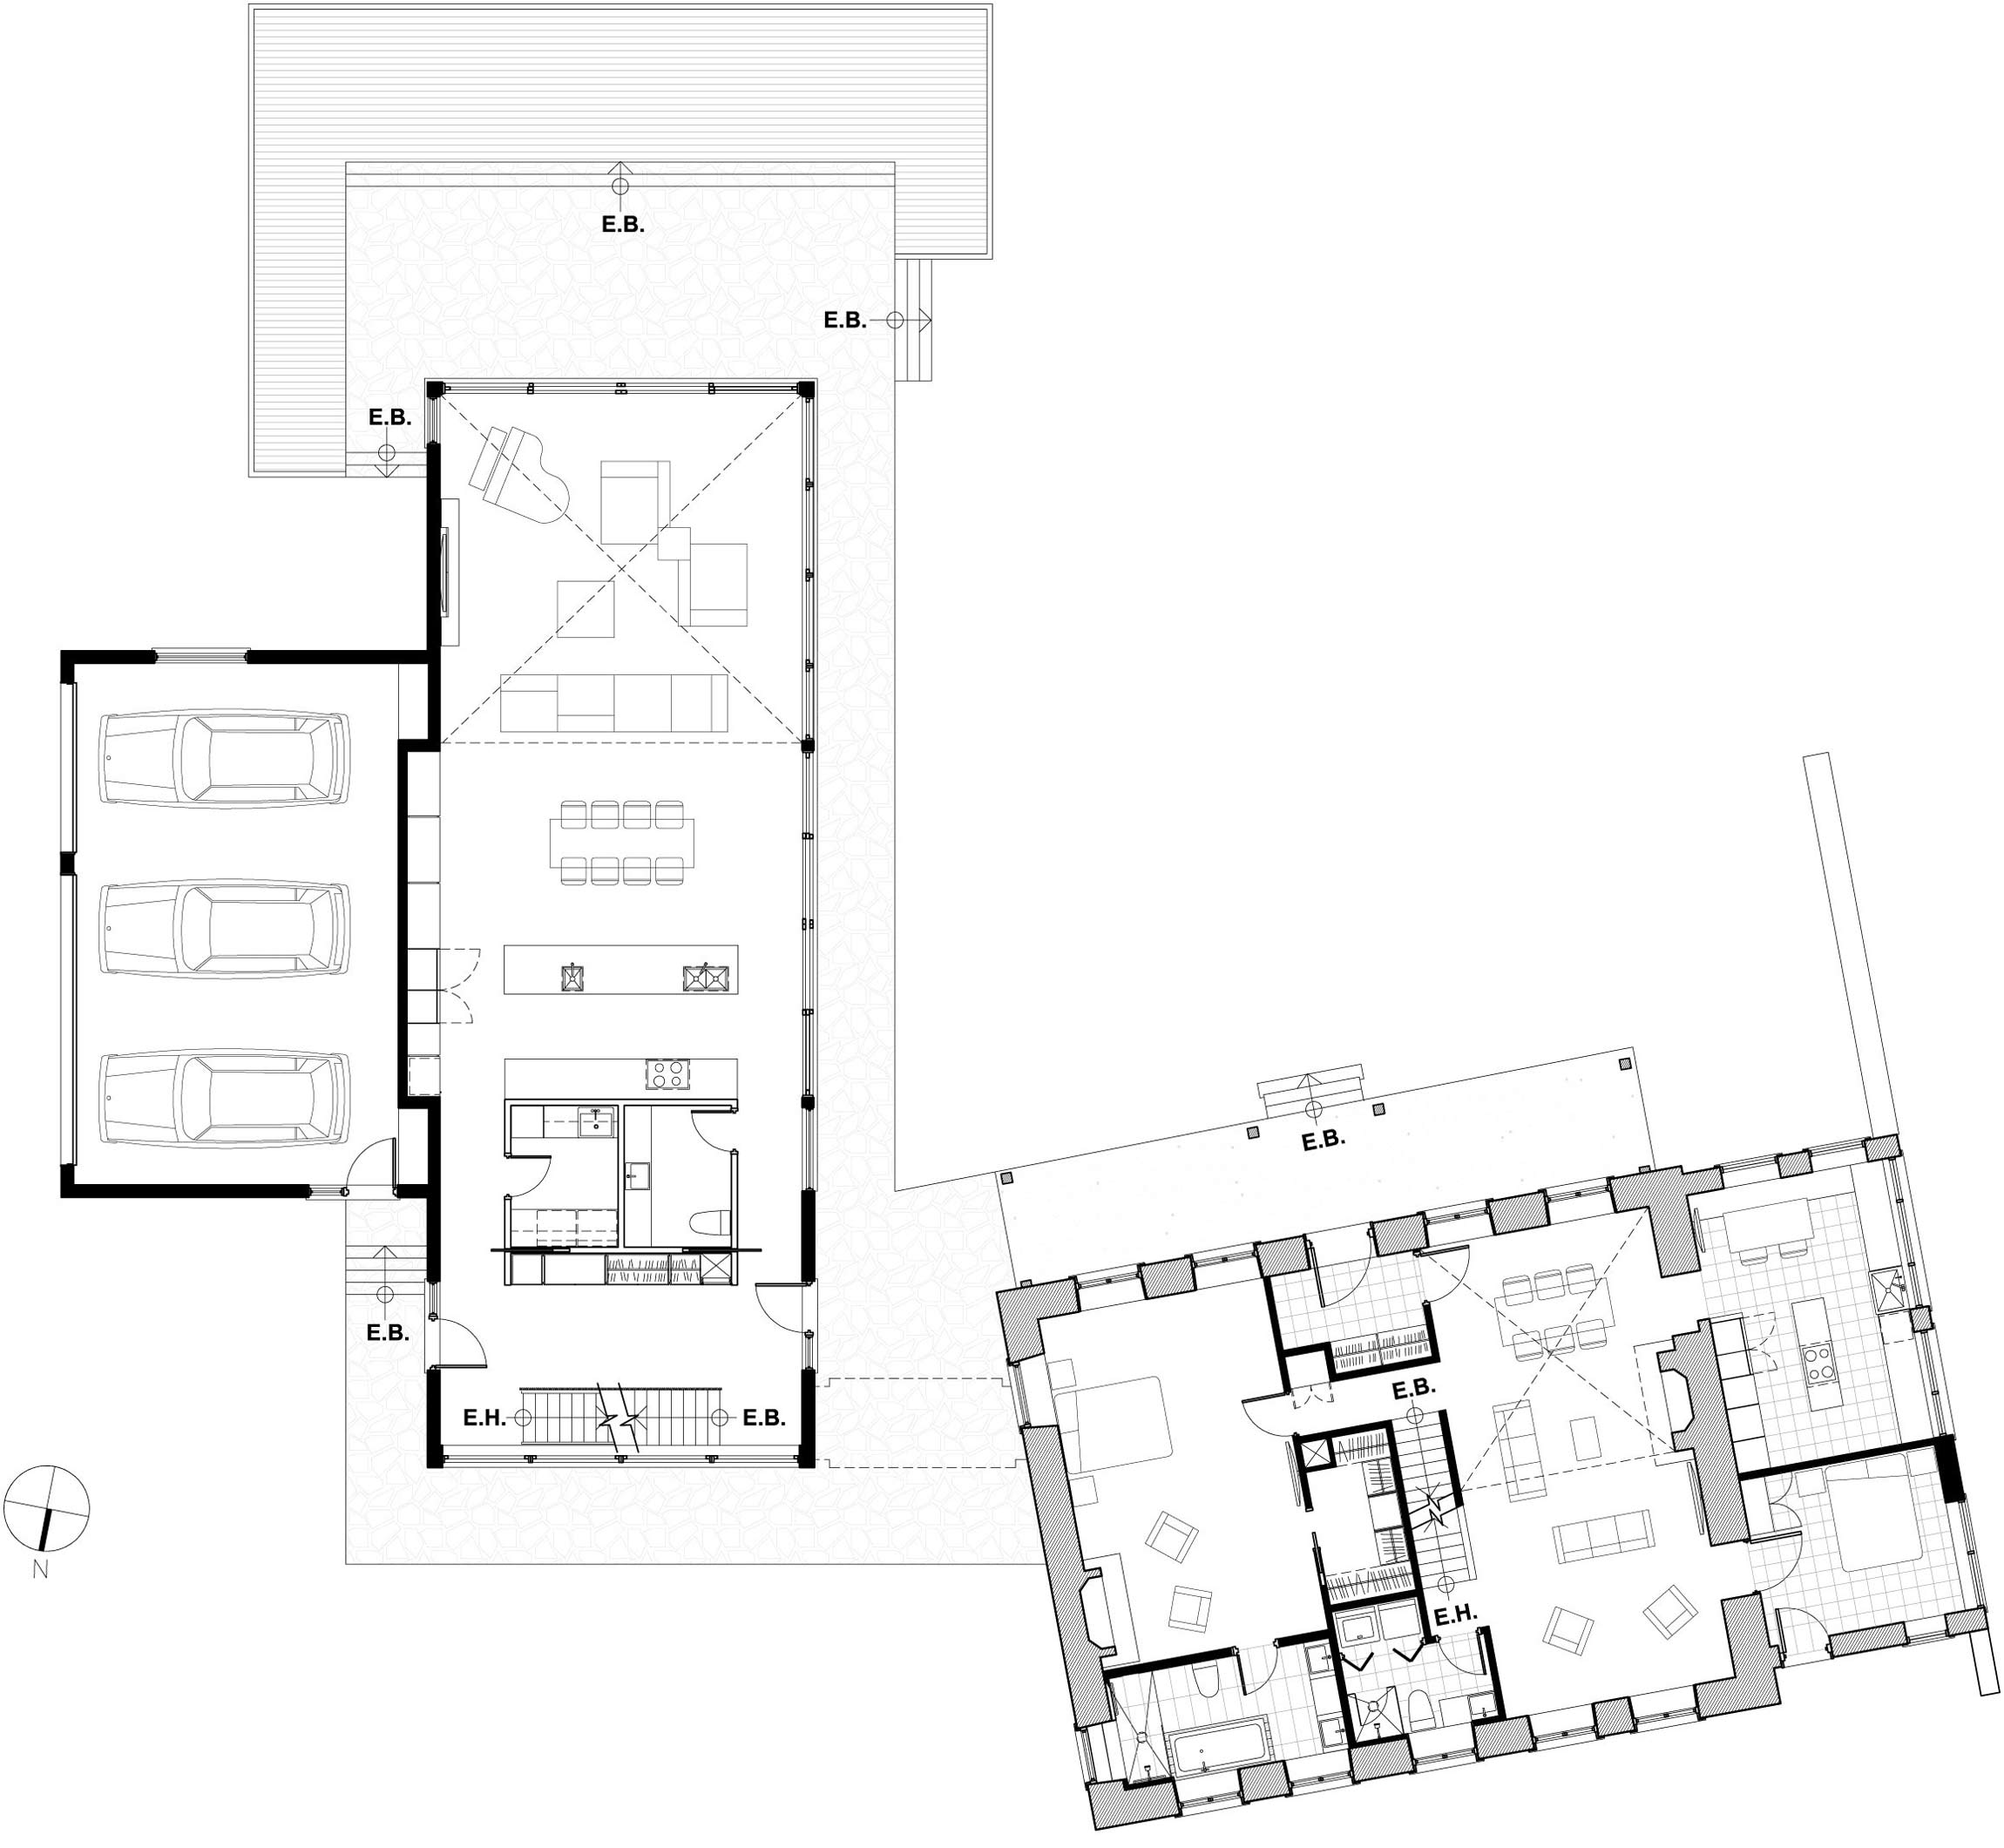 Ground Floor Plan, Renovation and Addition in Dorval, Canada